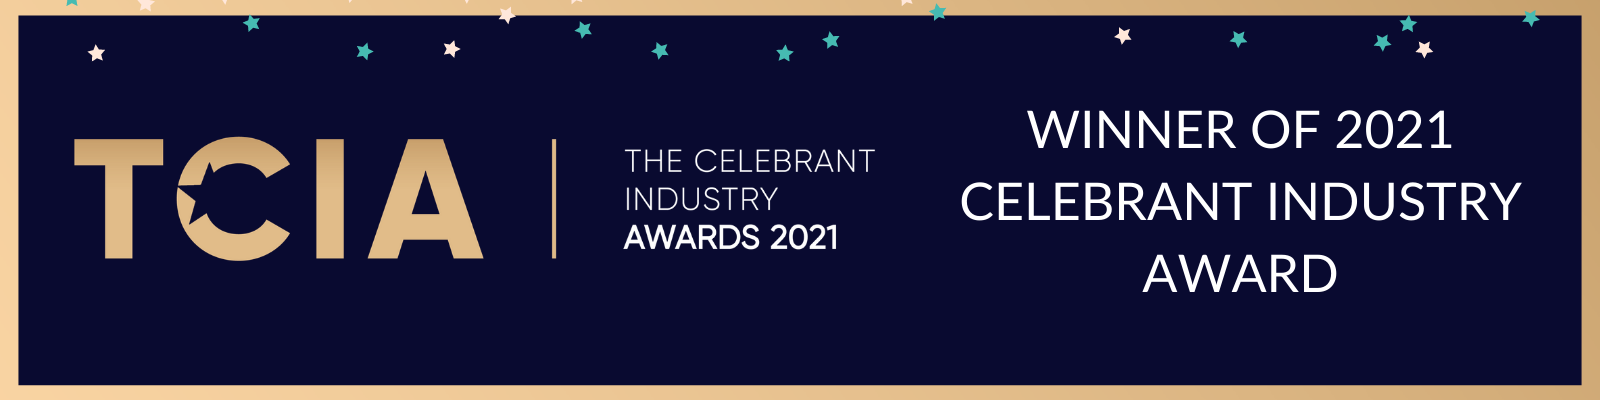 Copy of Copy of The Celebrant Industry Awards and NEWSLETTER Header (3)